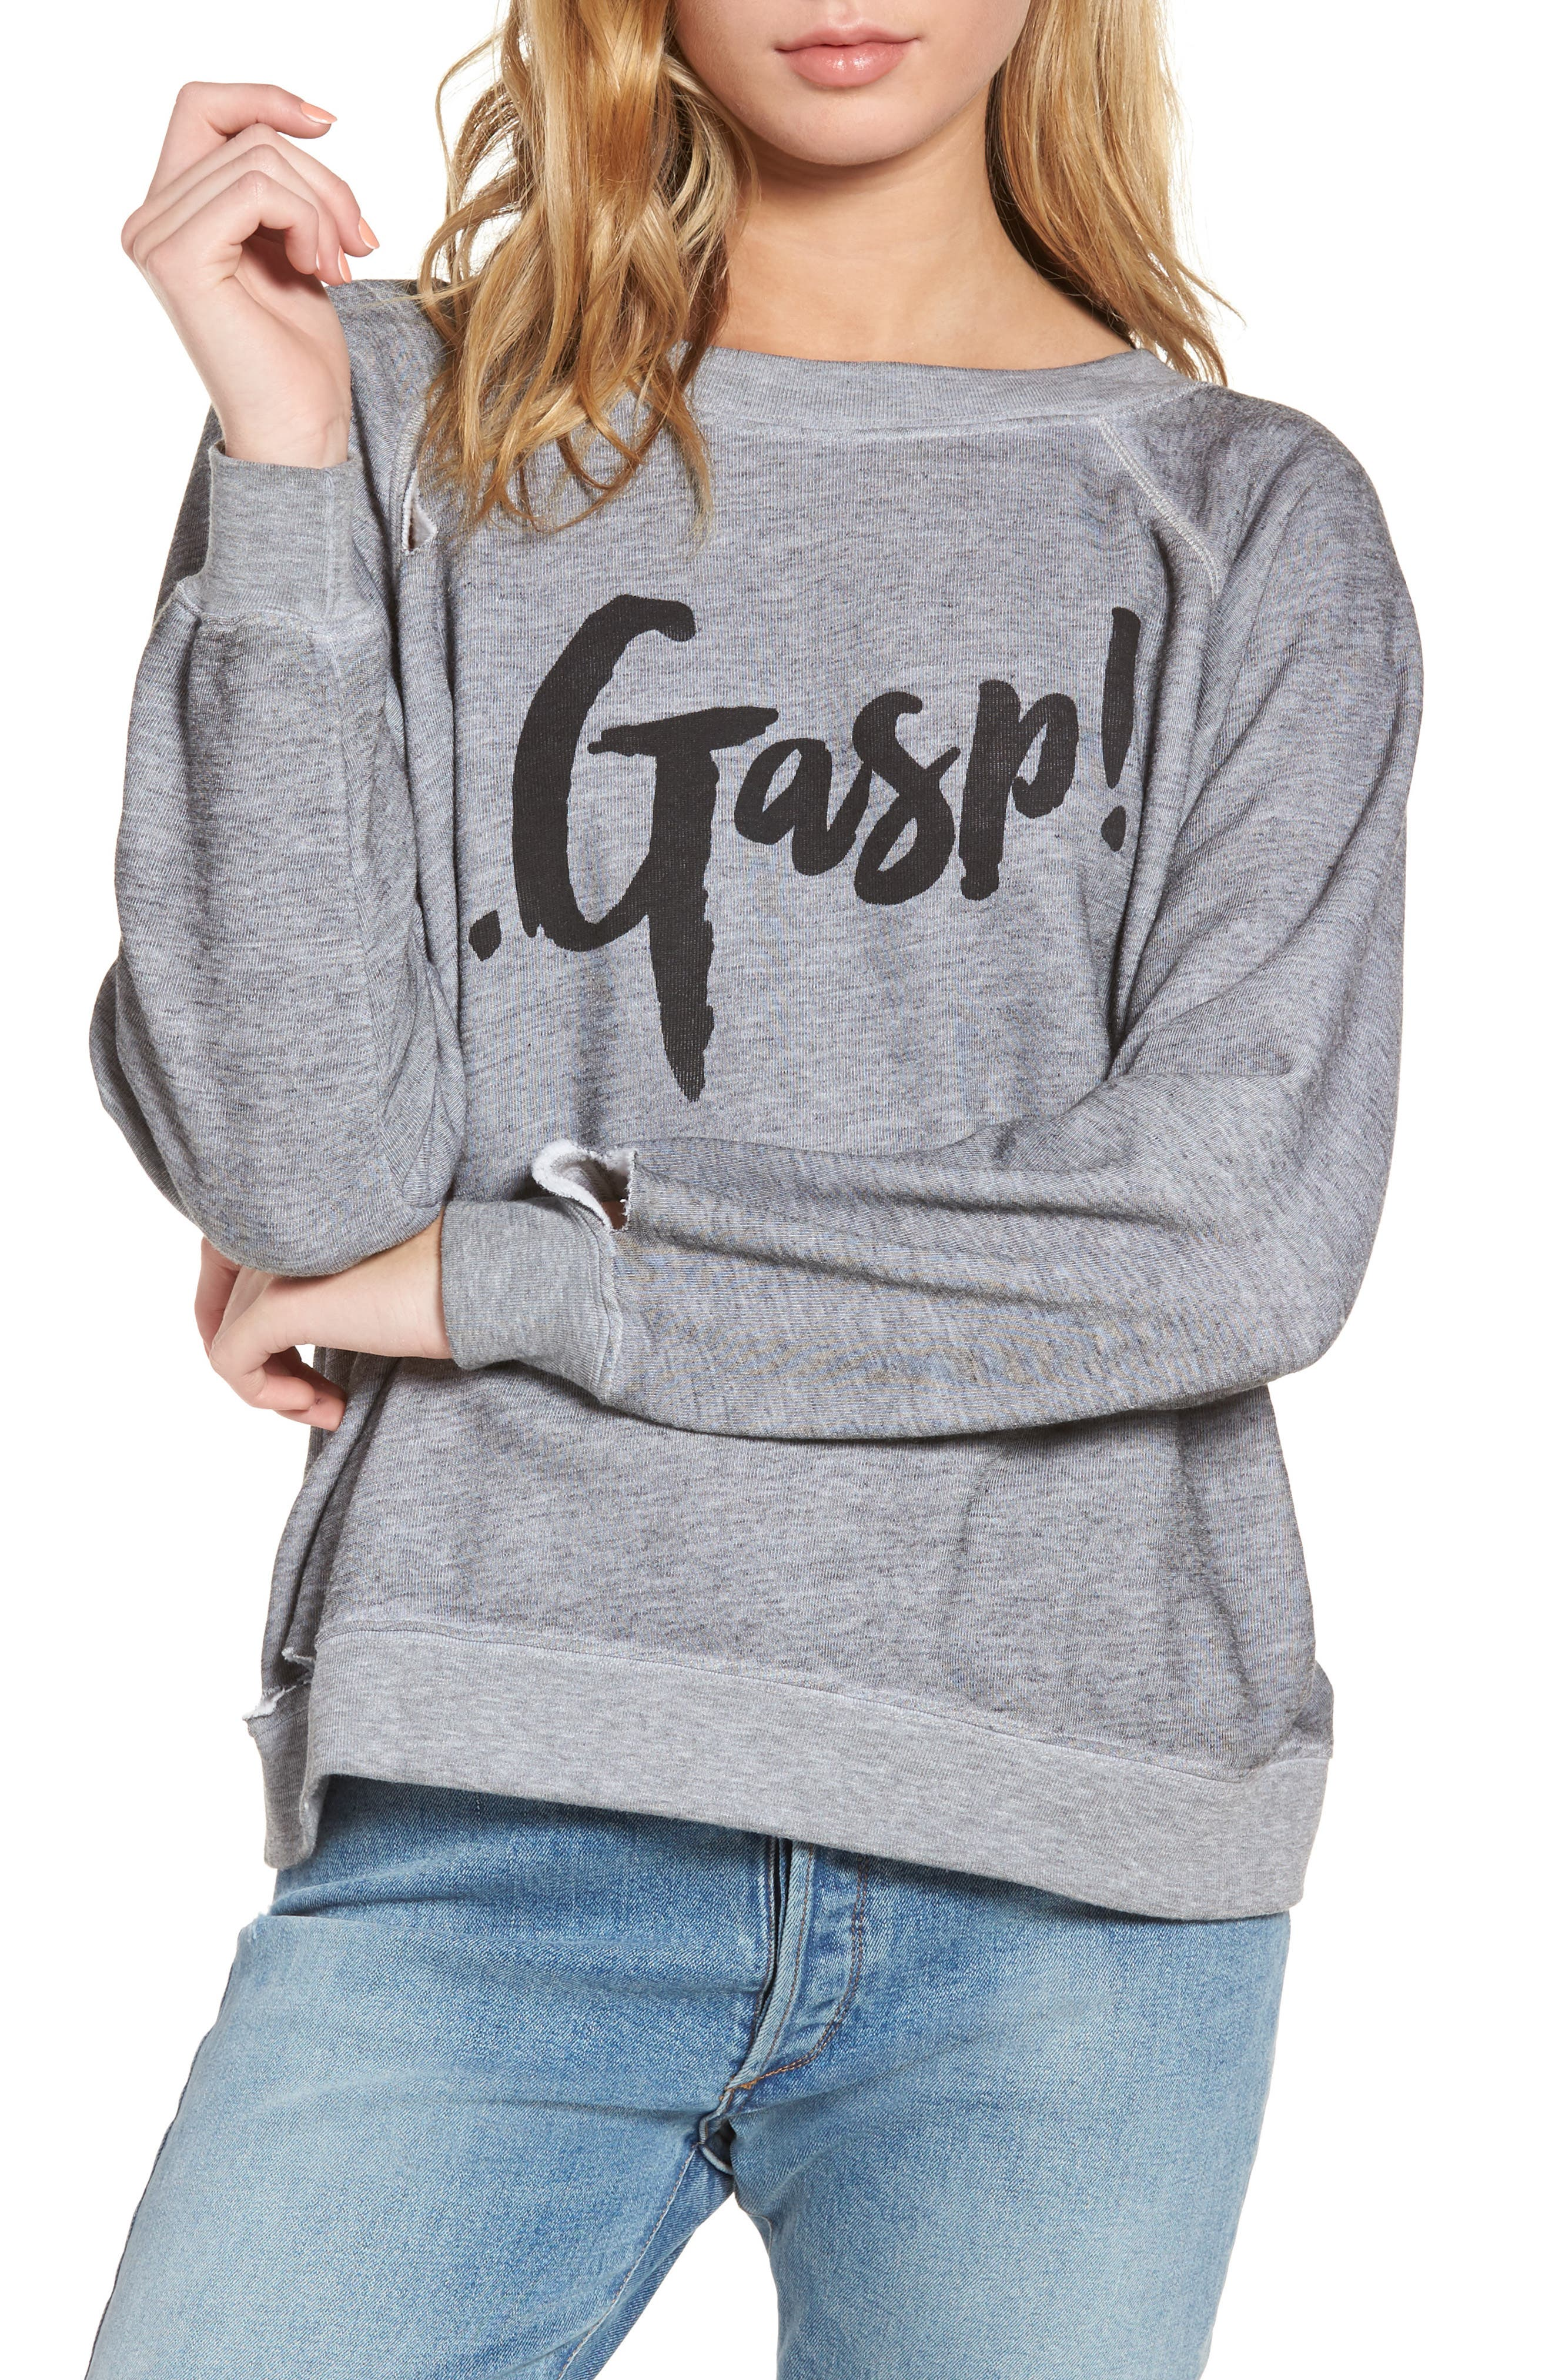 Gasp Thrashed Sommers Sweatshirt,                             Main thumbnail 1, color,                             020